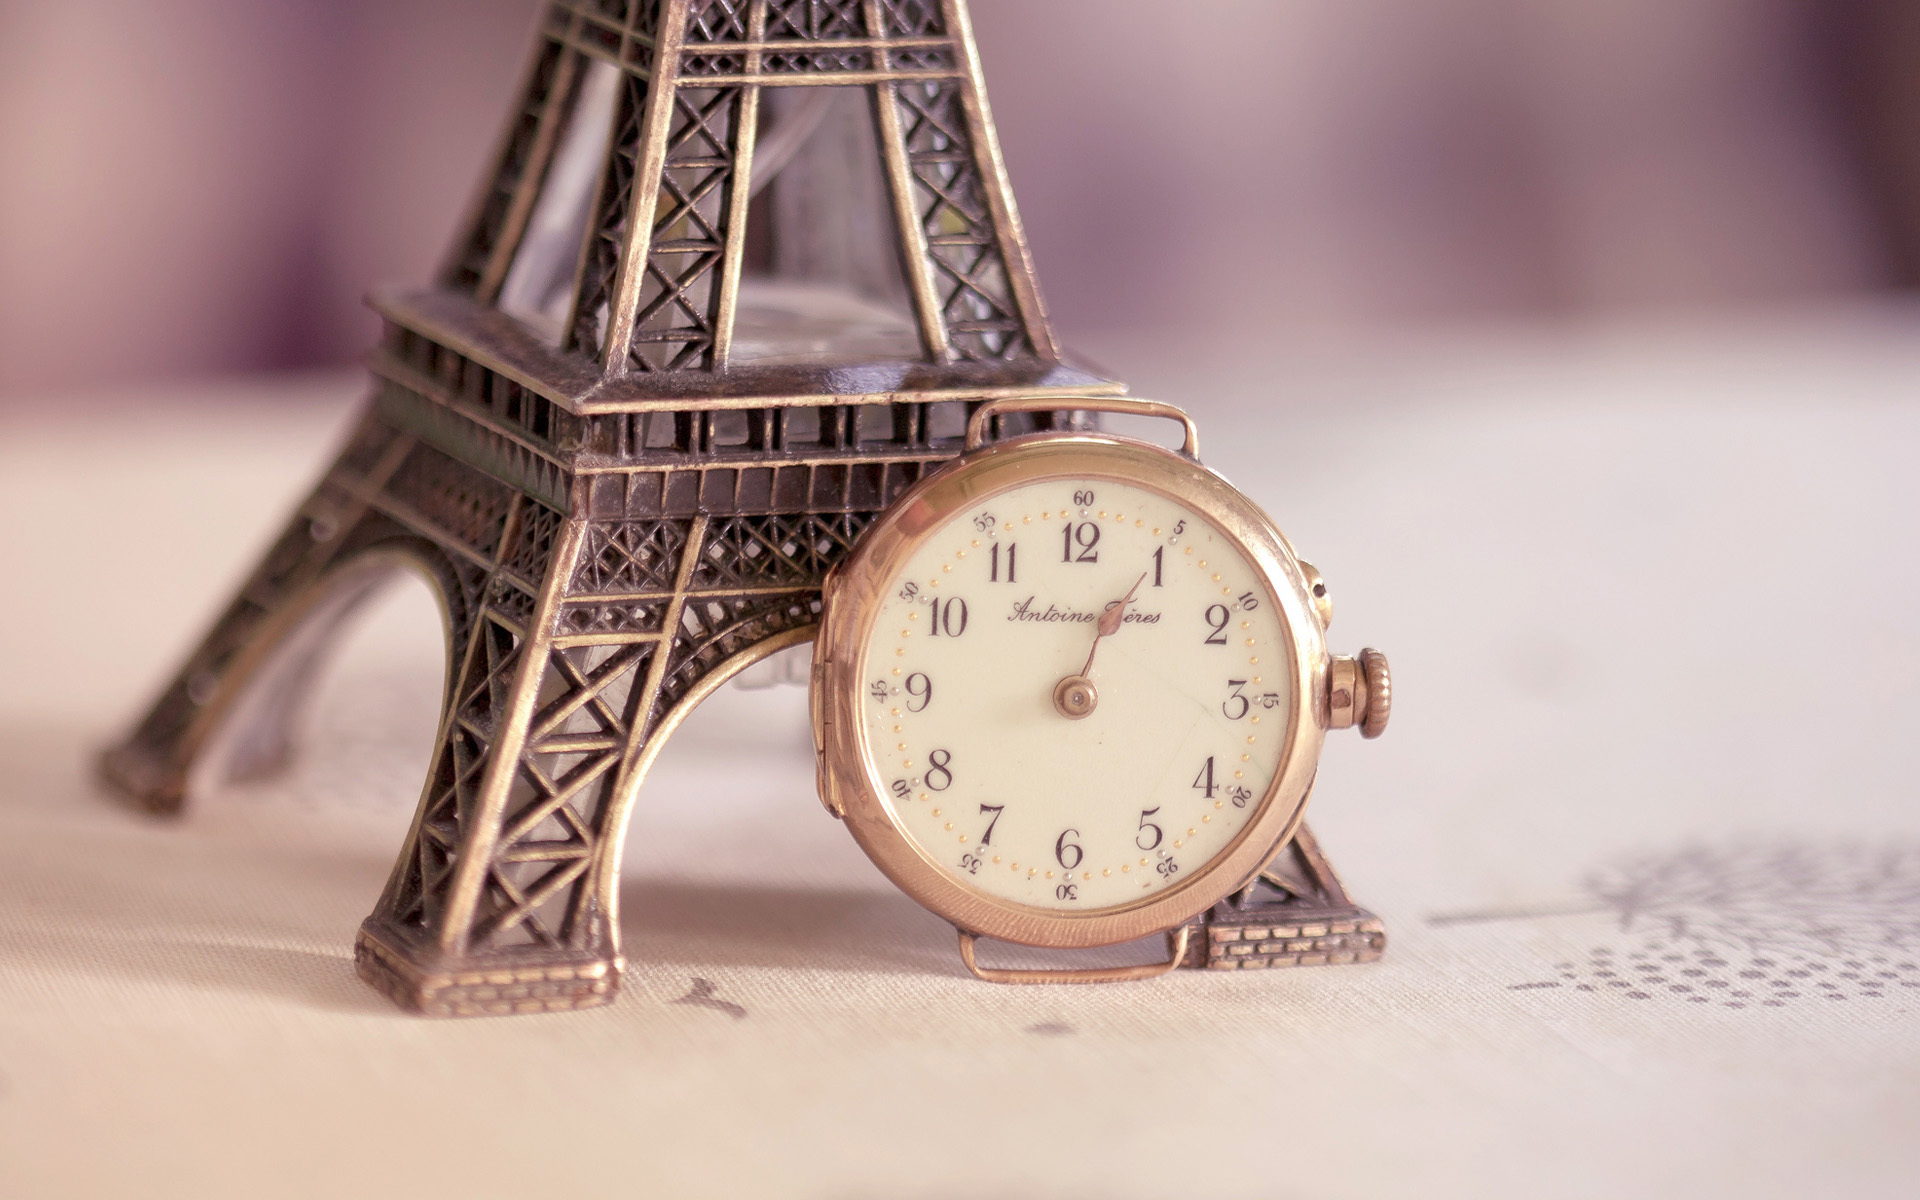 Vintage Alarm Clock Wallpaper 39897